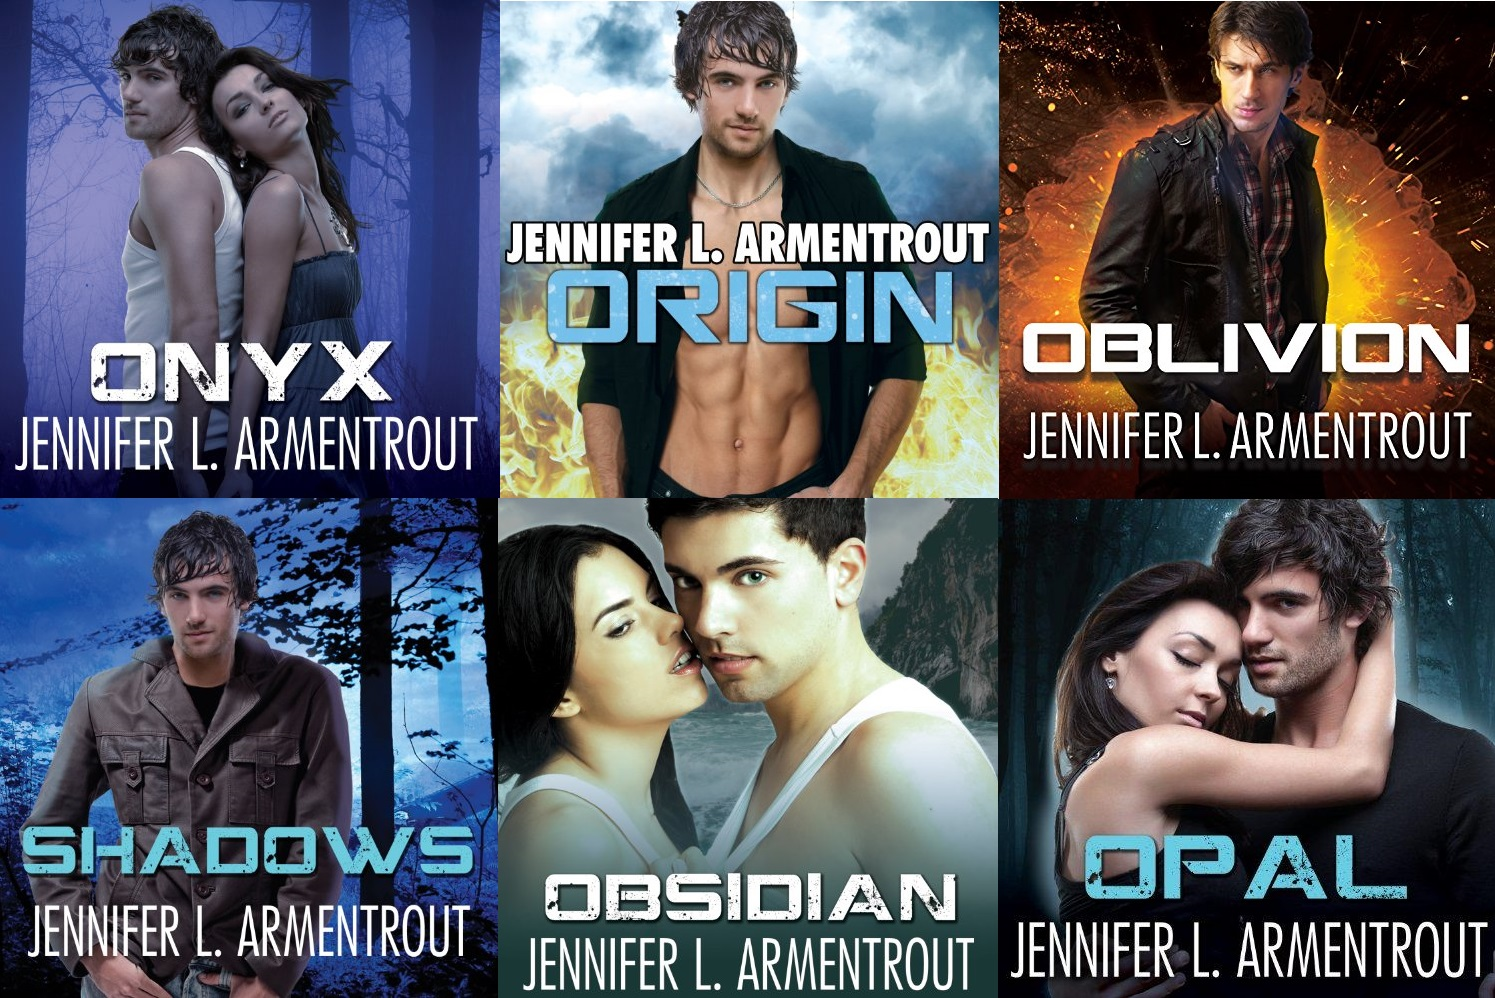 Lux Series (books 0.5, 1, 2, 3, 4, 5. and 6) - Jennifer L Armentrout